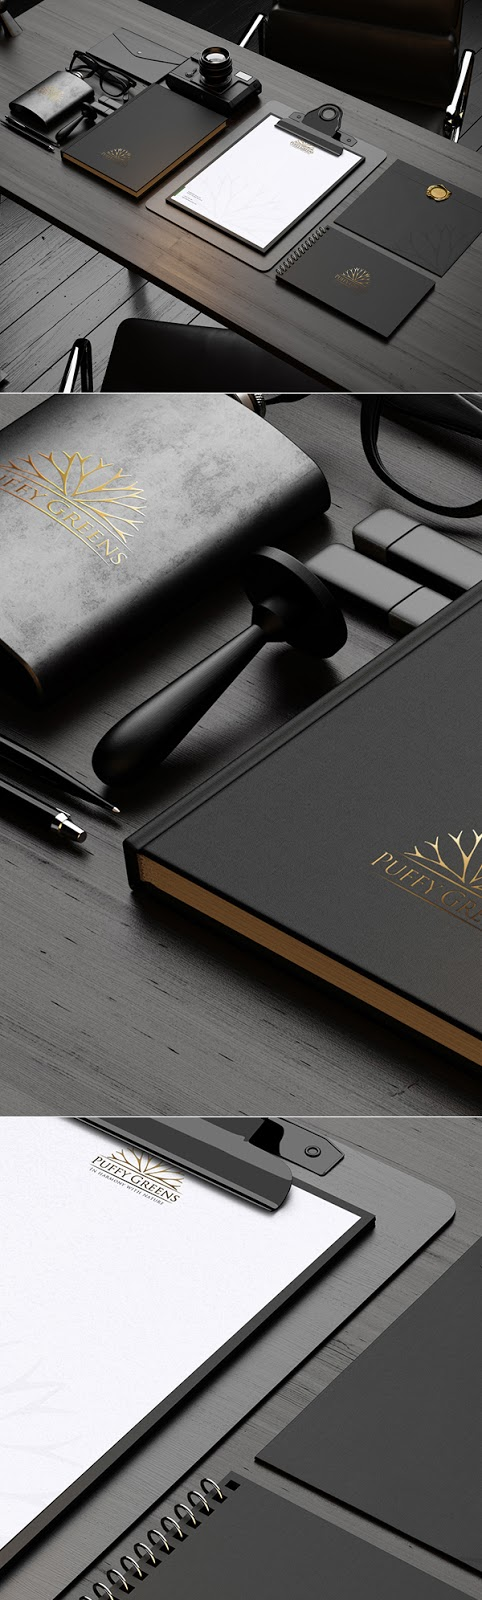 Download Free Mockup PSD 2018 - Dark Stationery Mockup PSD Free Download